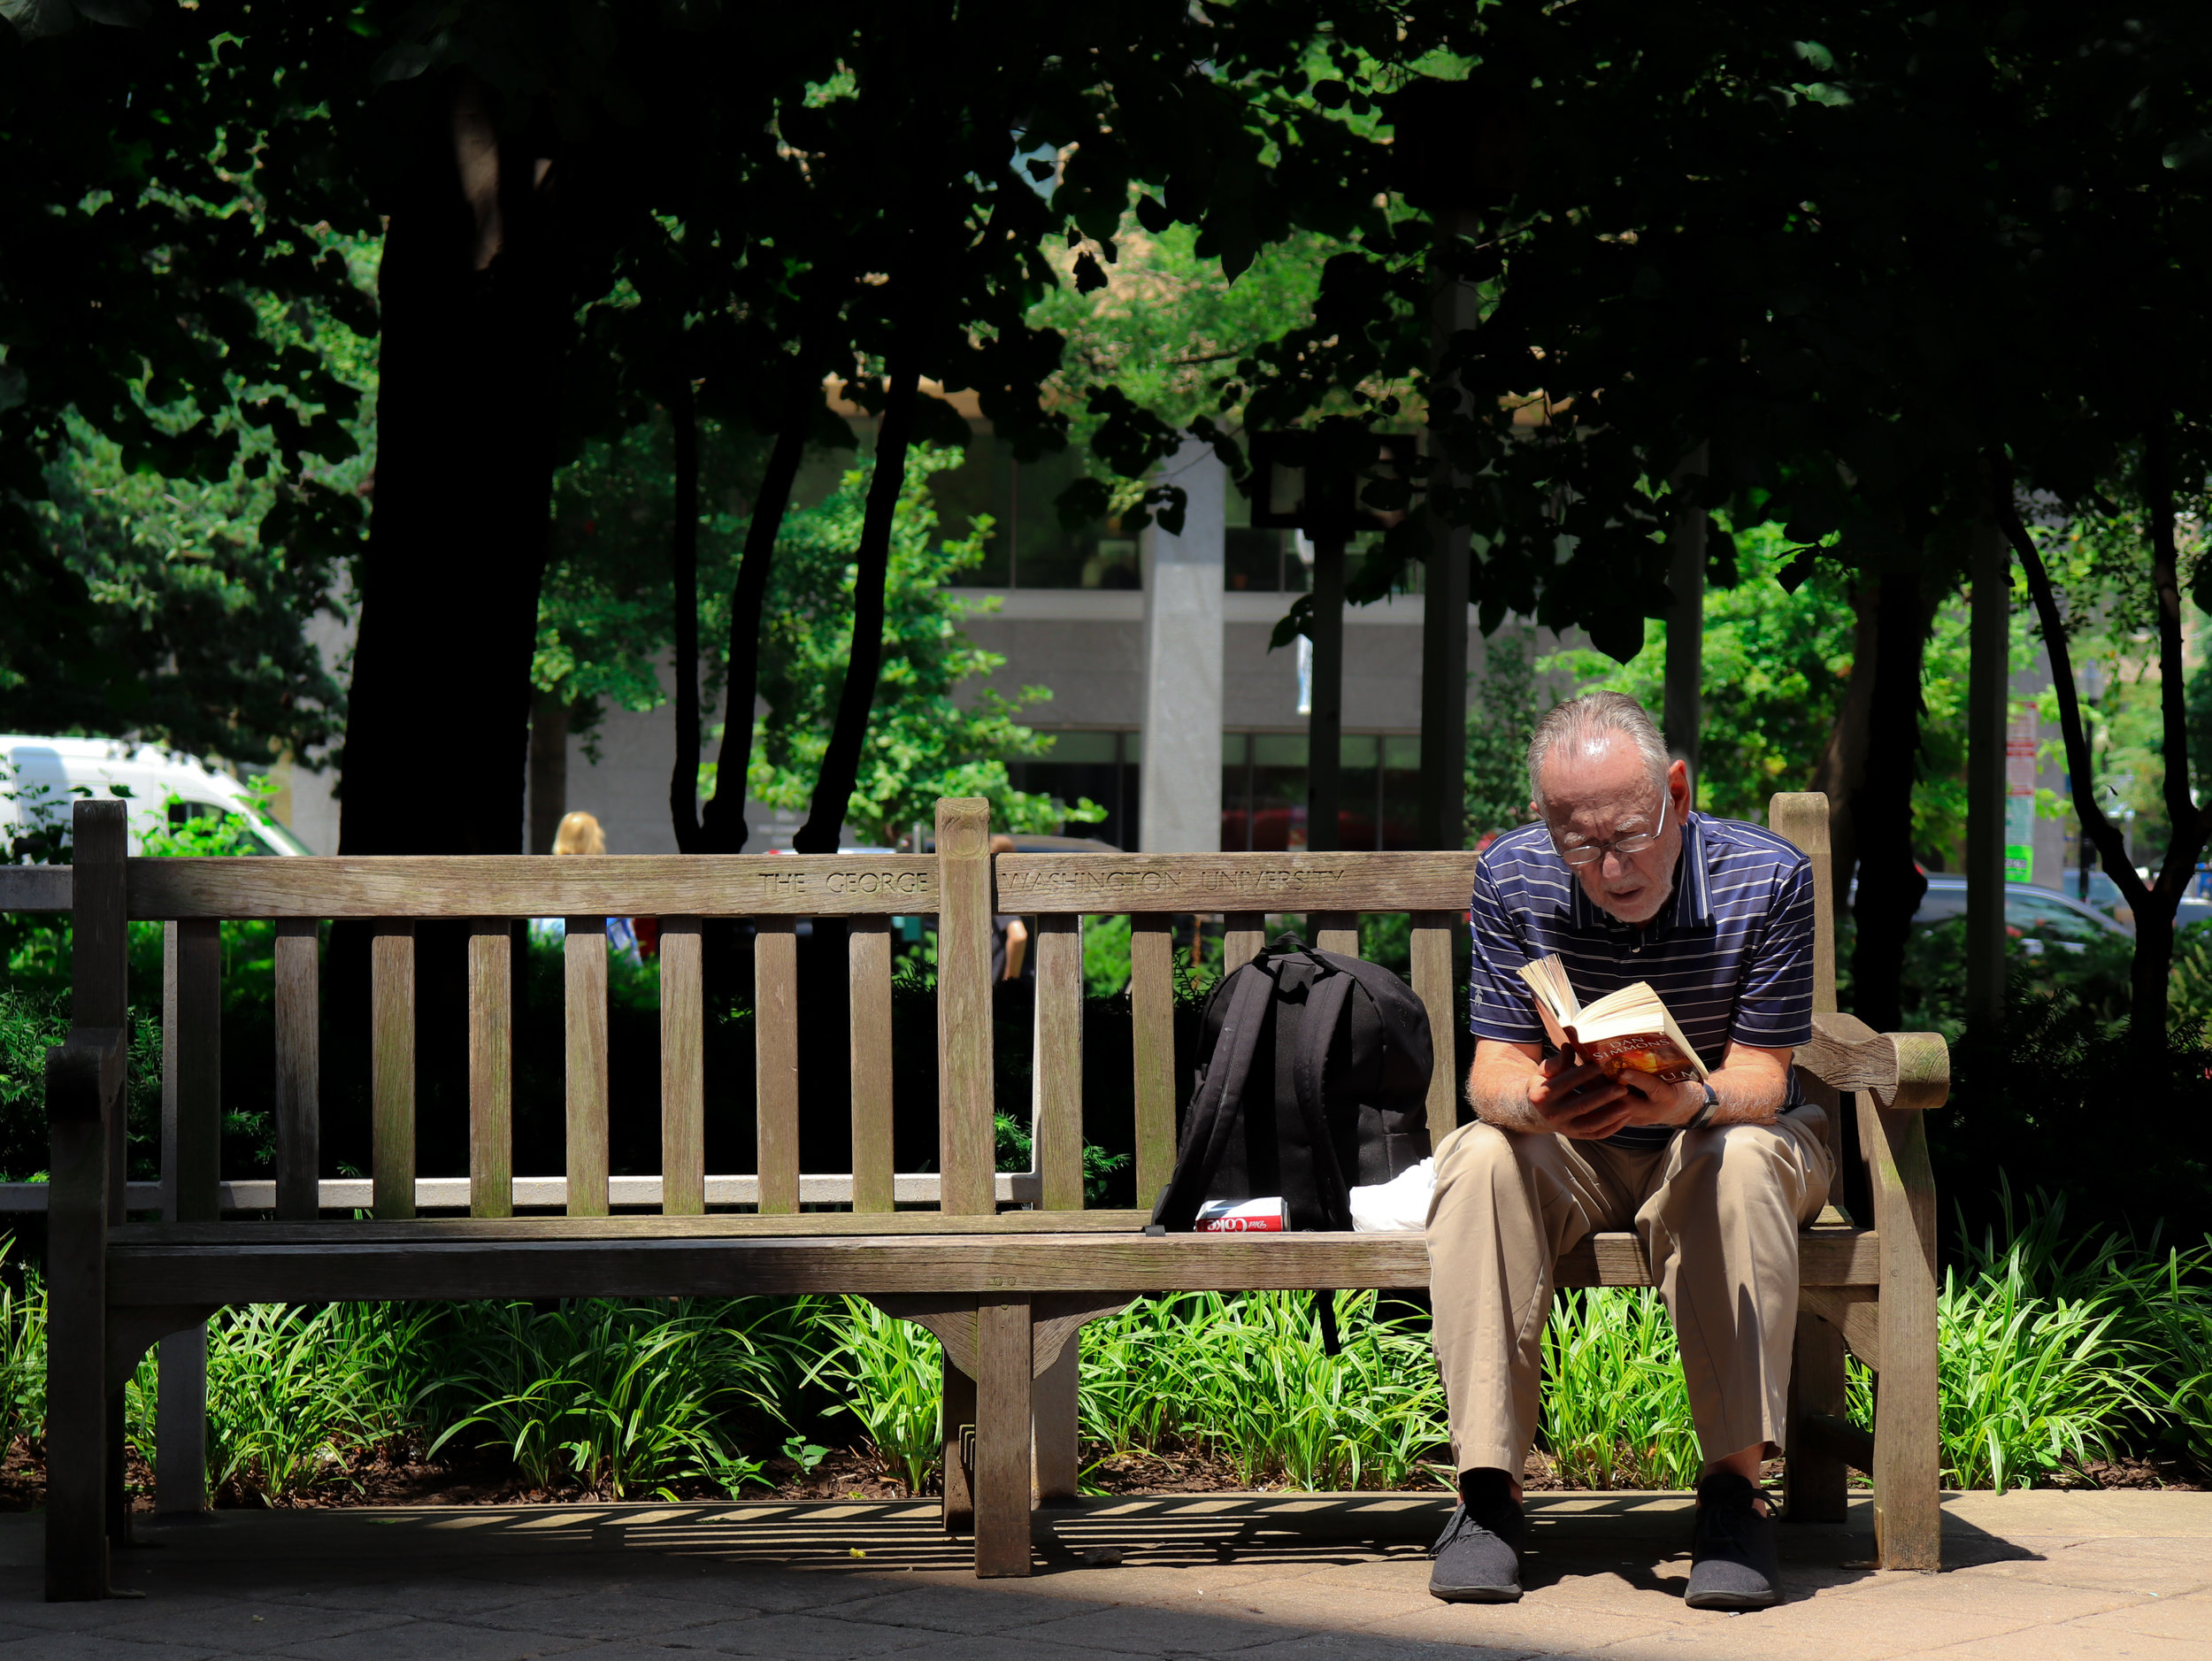 A man sits on a bench near the George Washington University Campus, deeply immersed in a Dan Simmons novel. Unable to remove his eyes from the page, he declined to comment.